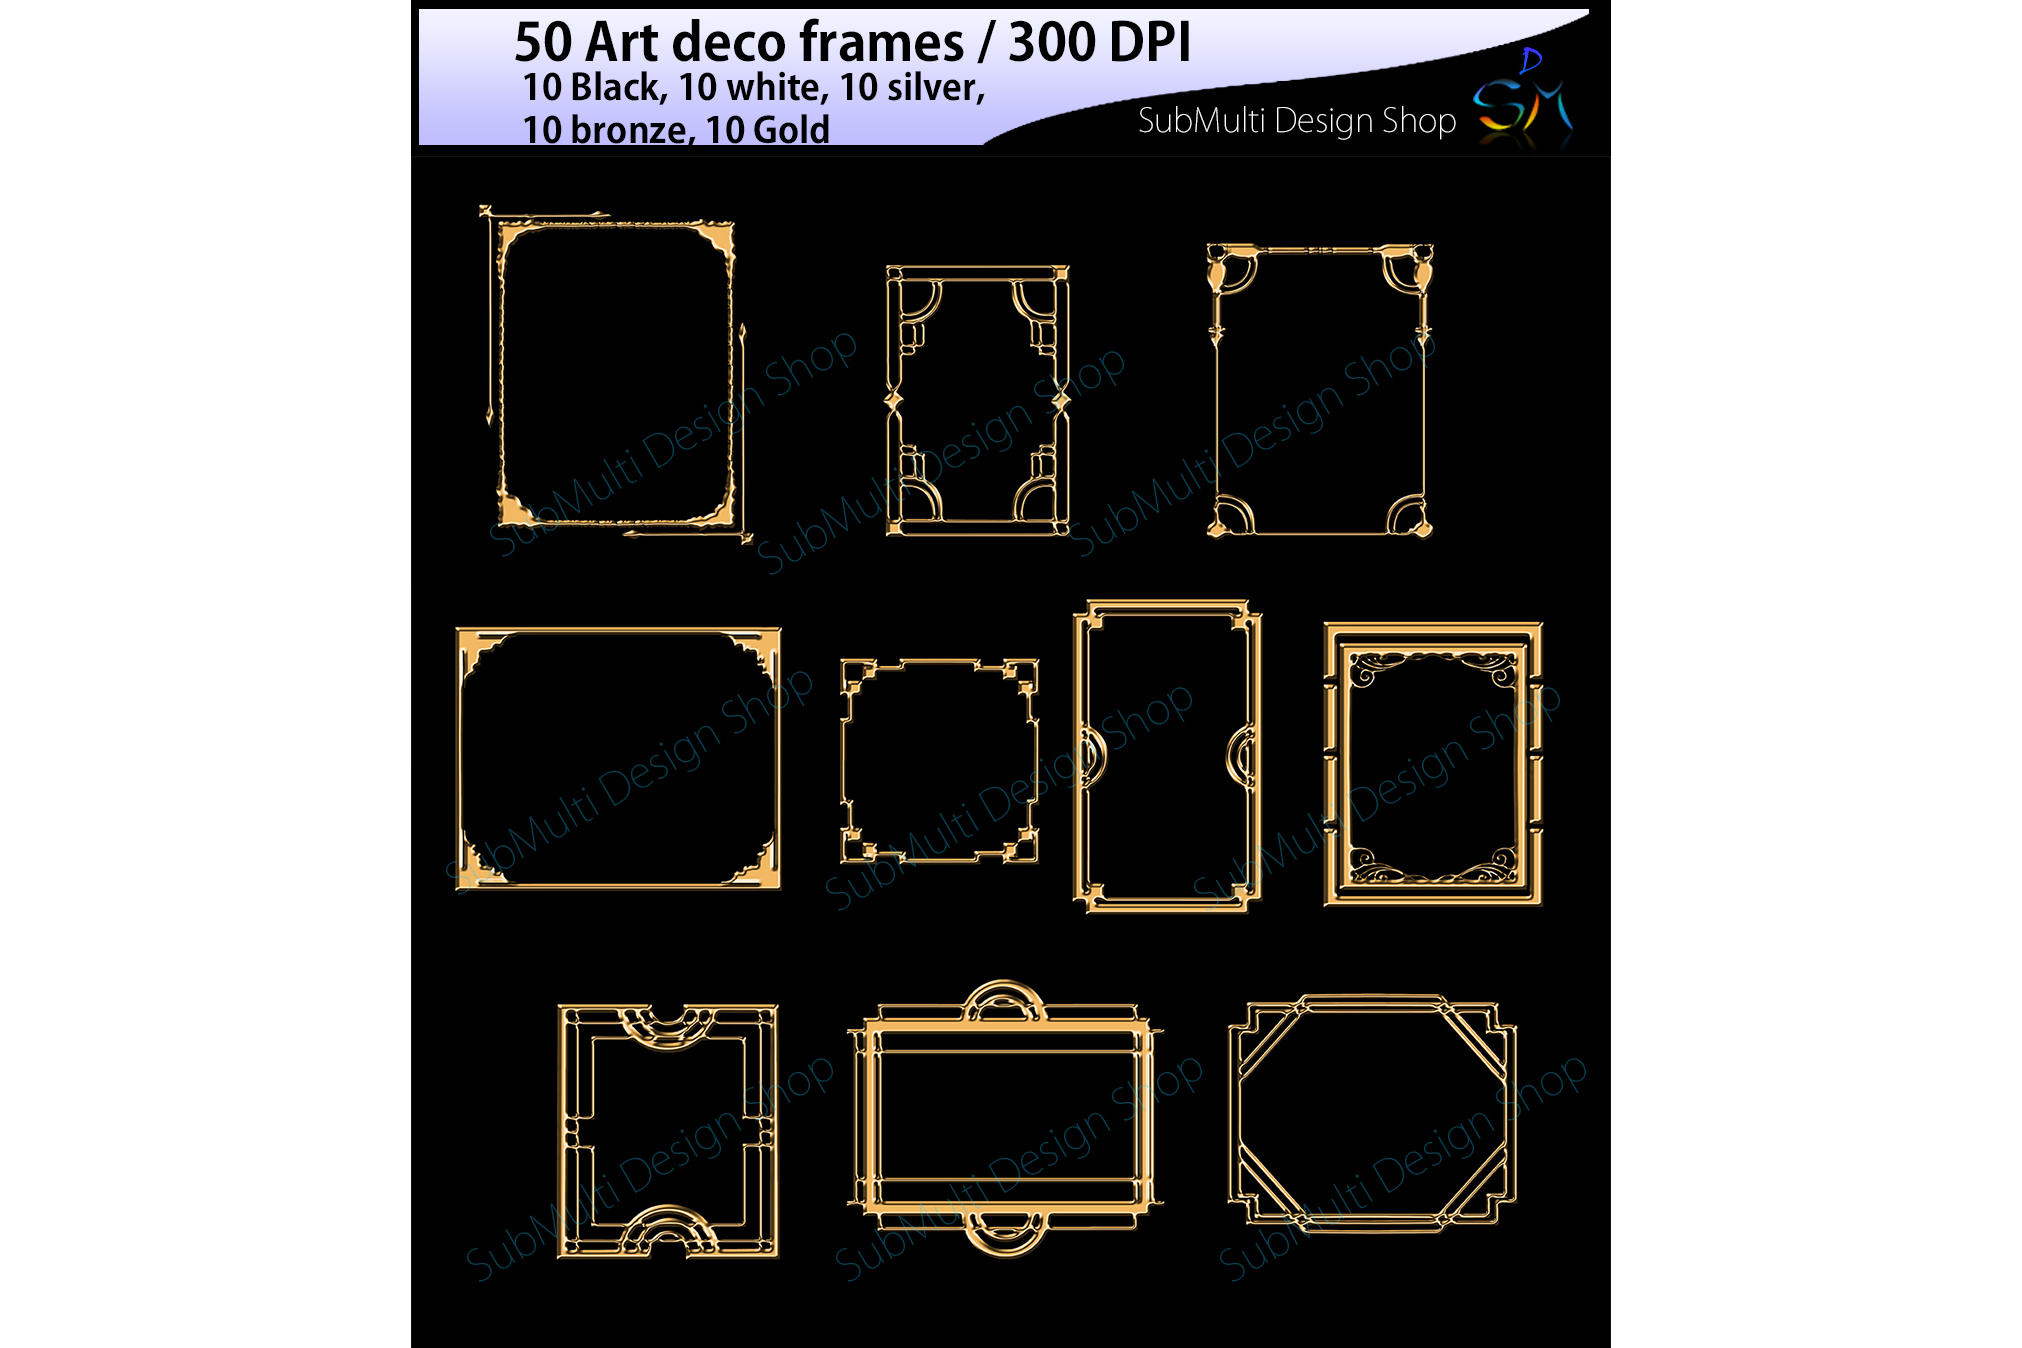 art deco frames / art deco frames clipart / art deco frames silhouette / art deco gold frames / art deco silver frame / digital/High Quality example image 3